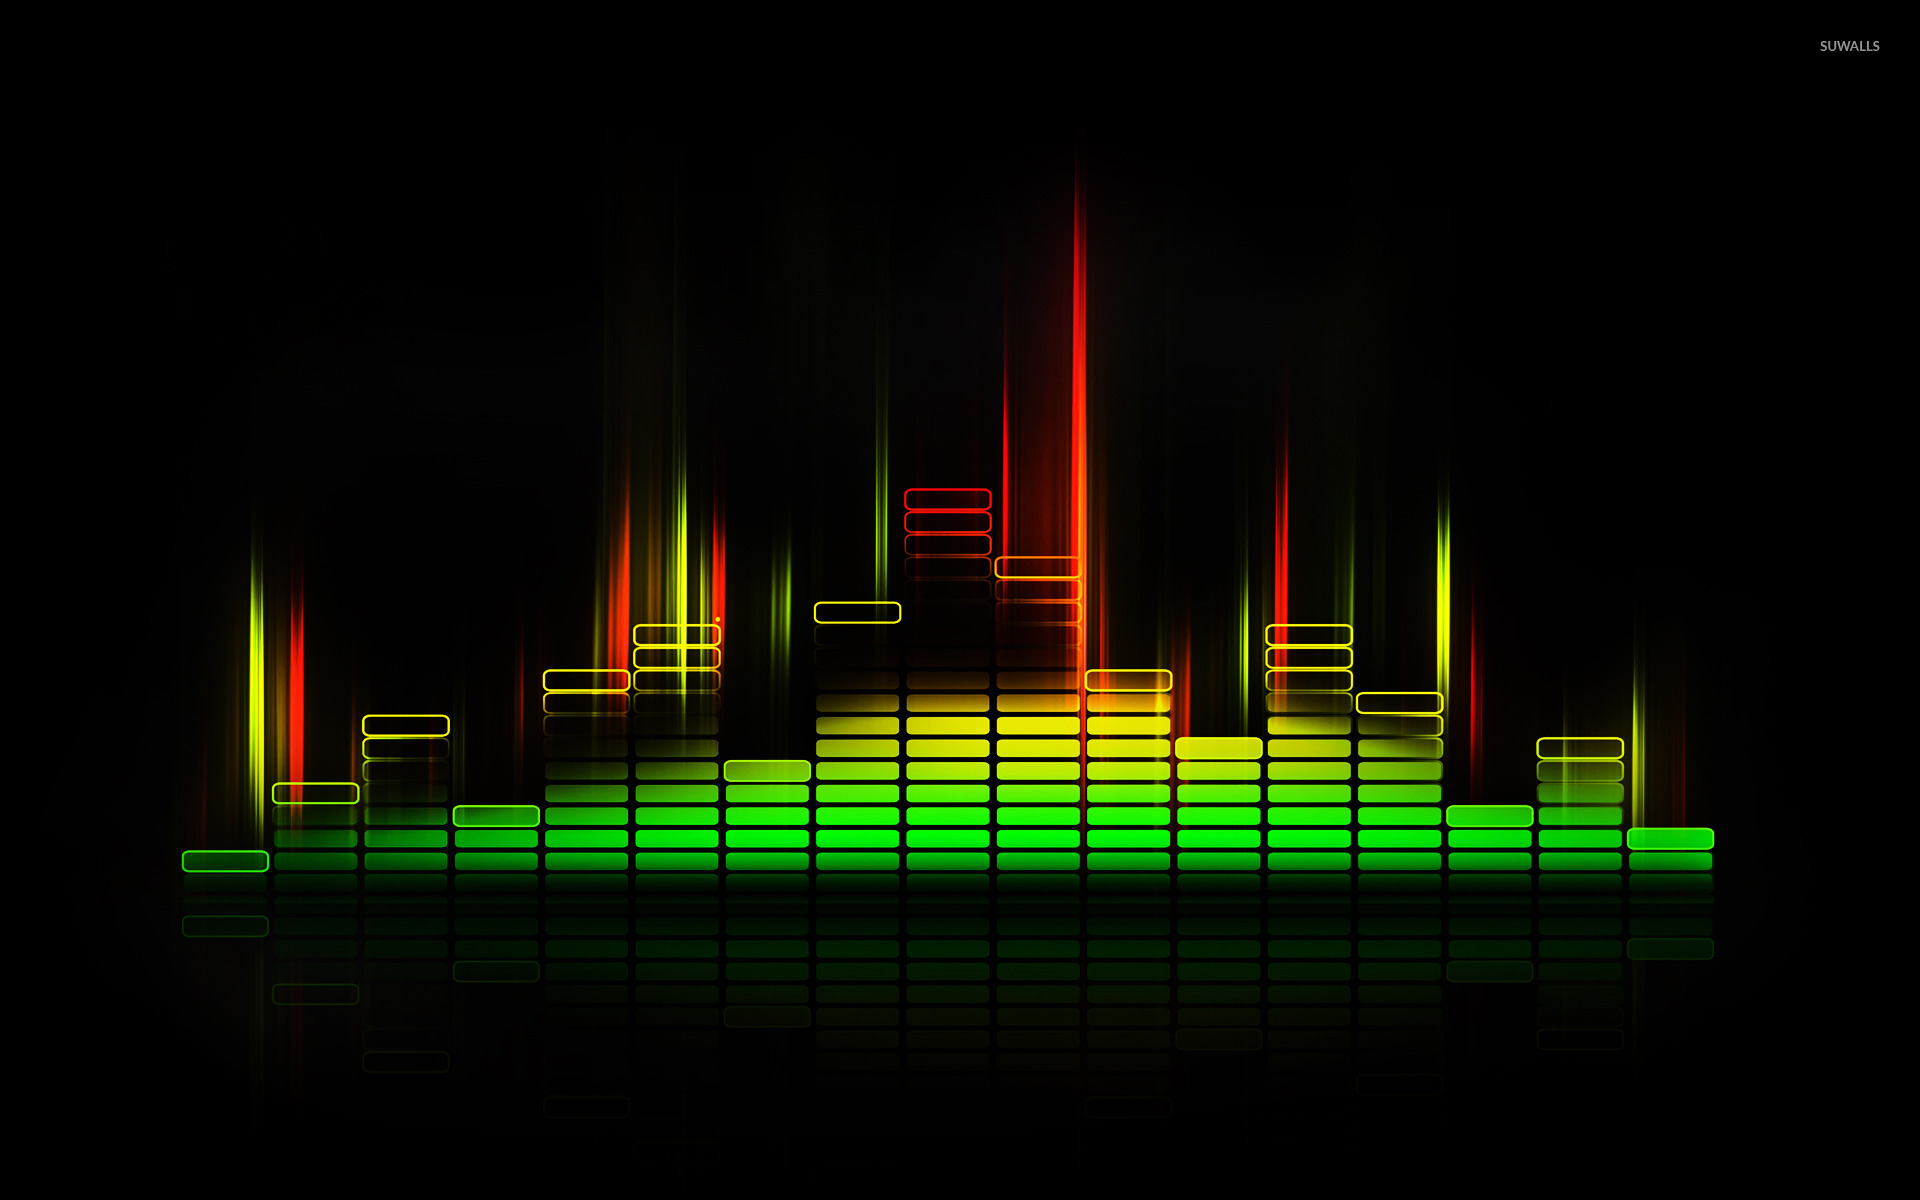 Download Free 3d Music Equalizer Wallpapers Hd: Abstract Wallpapers